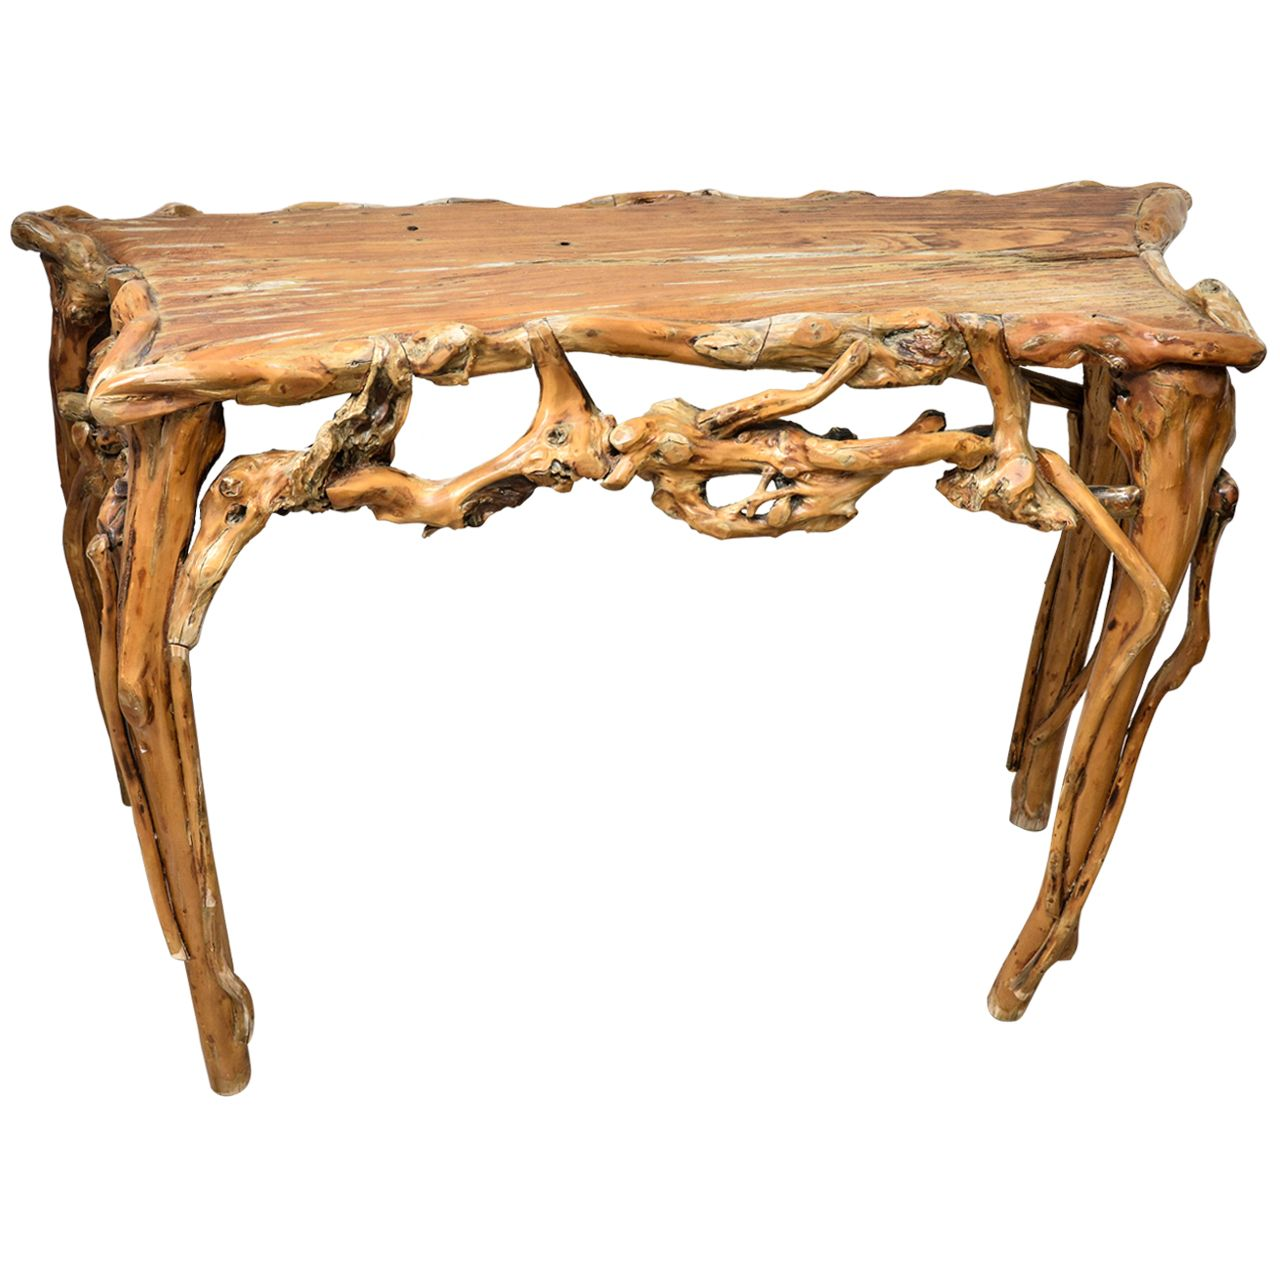 Driftwood console table driftwood console tables and consoles driftwood console table geotapseo Images